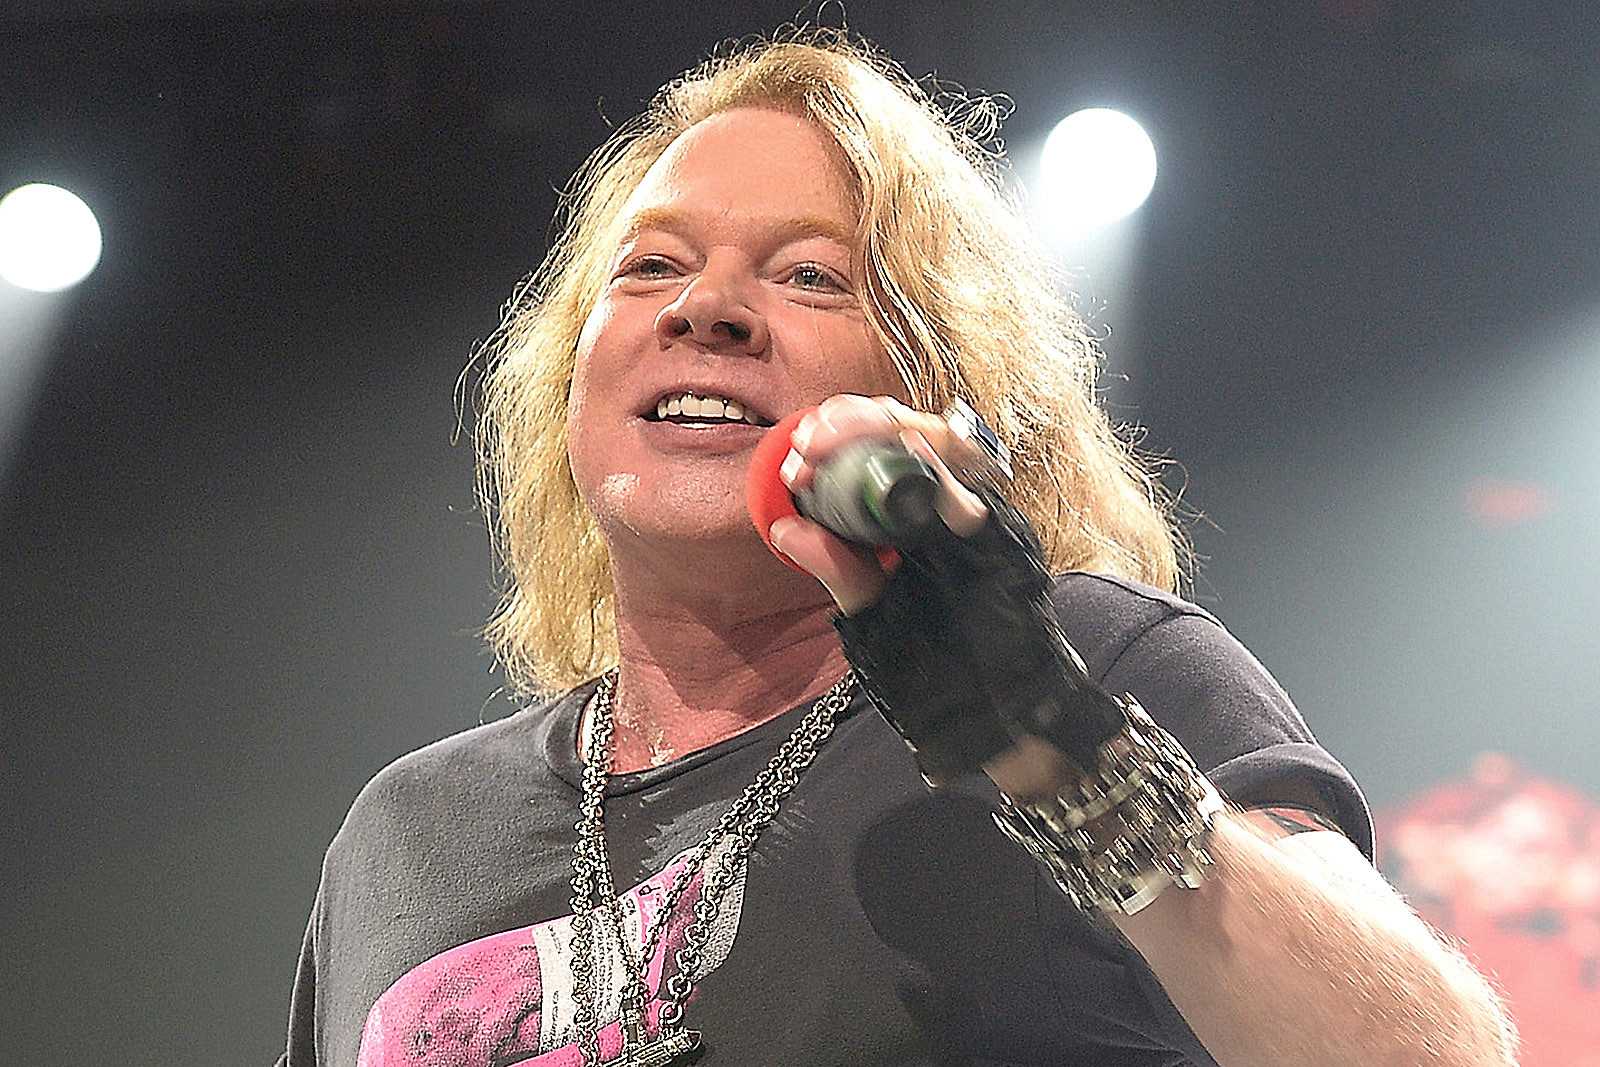 Axl Rose Felt 'Lame' Telling the Crowd He Was Sick